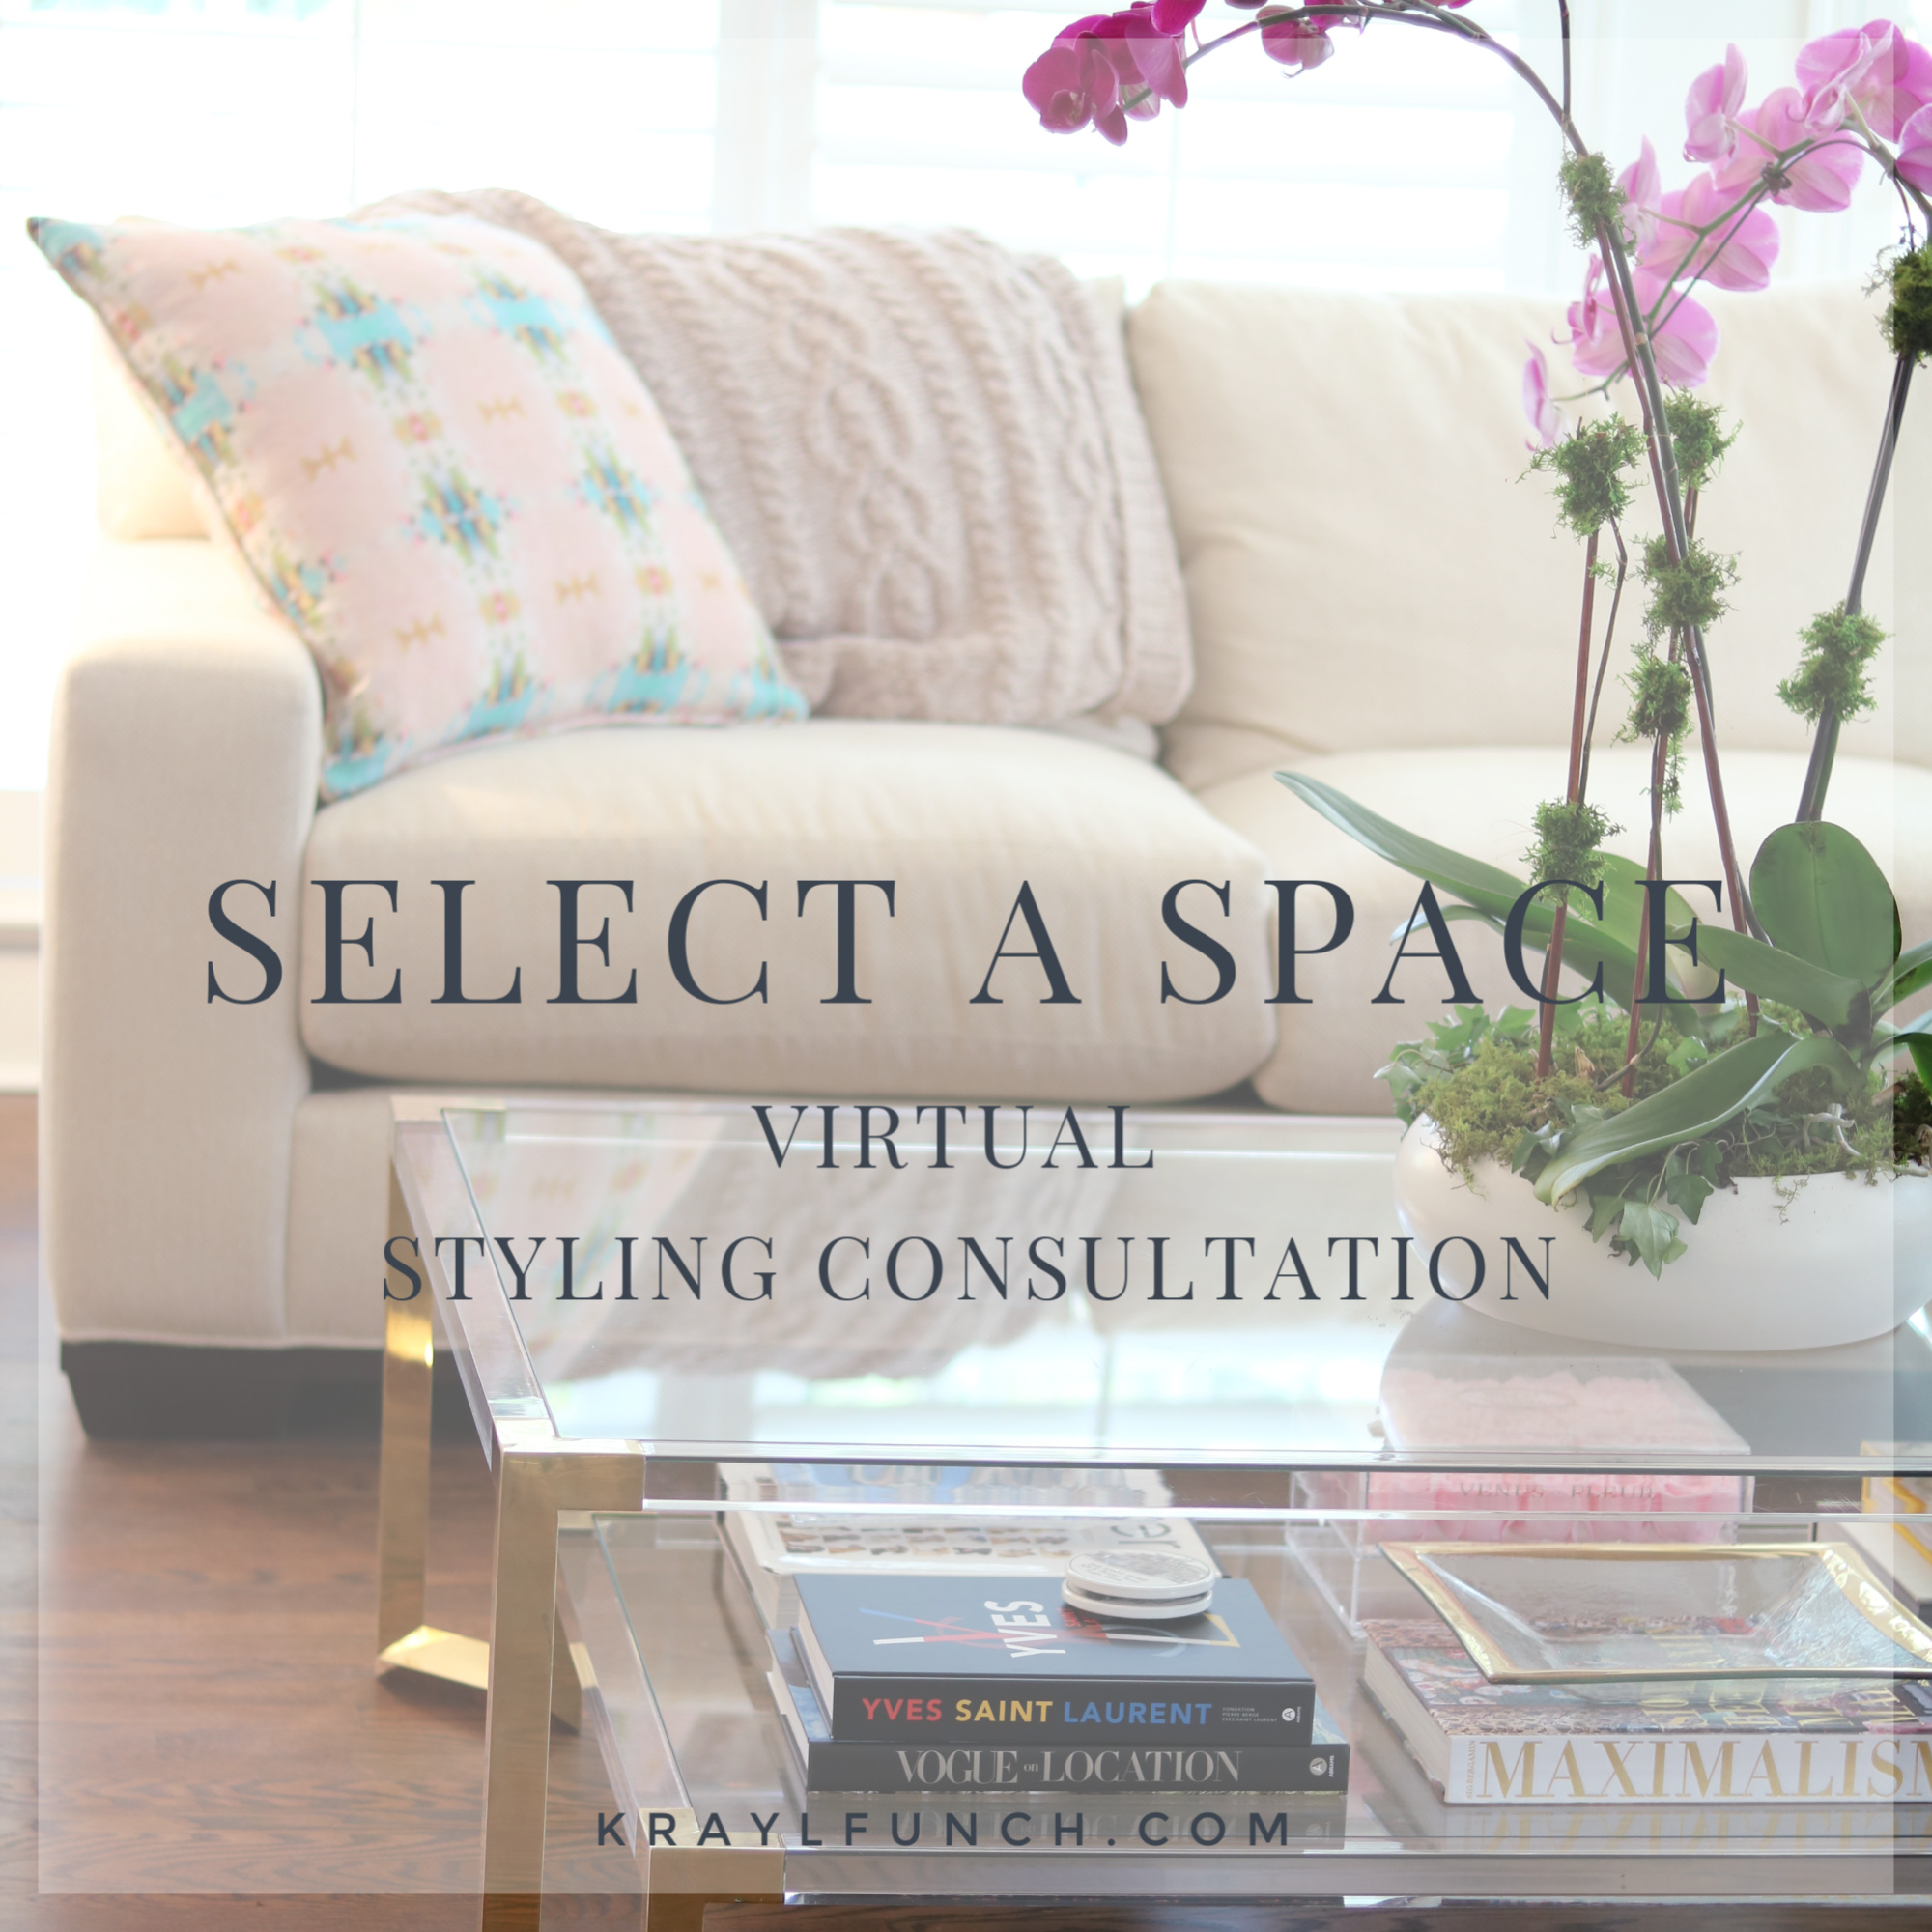 Select a space virtual styling and design consultation.